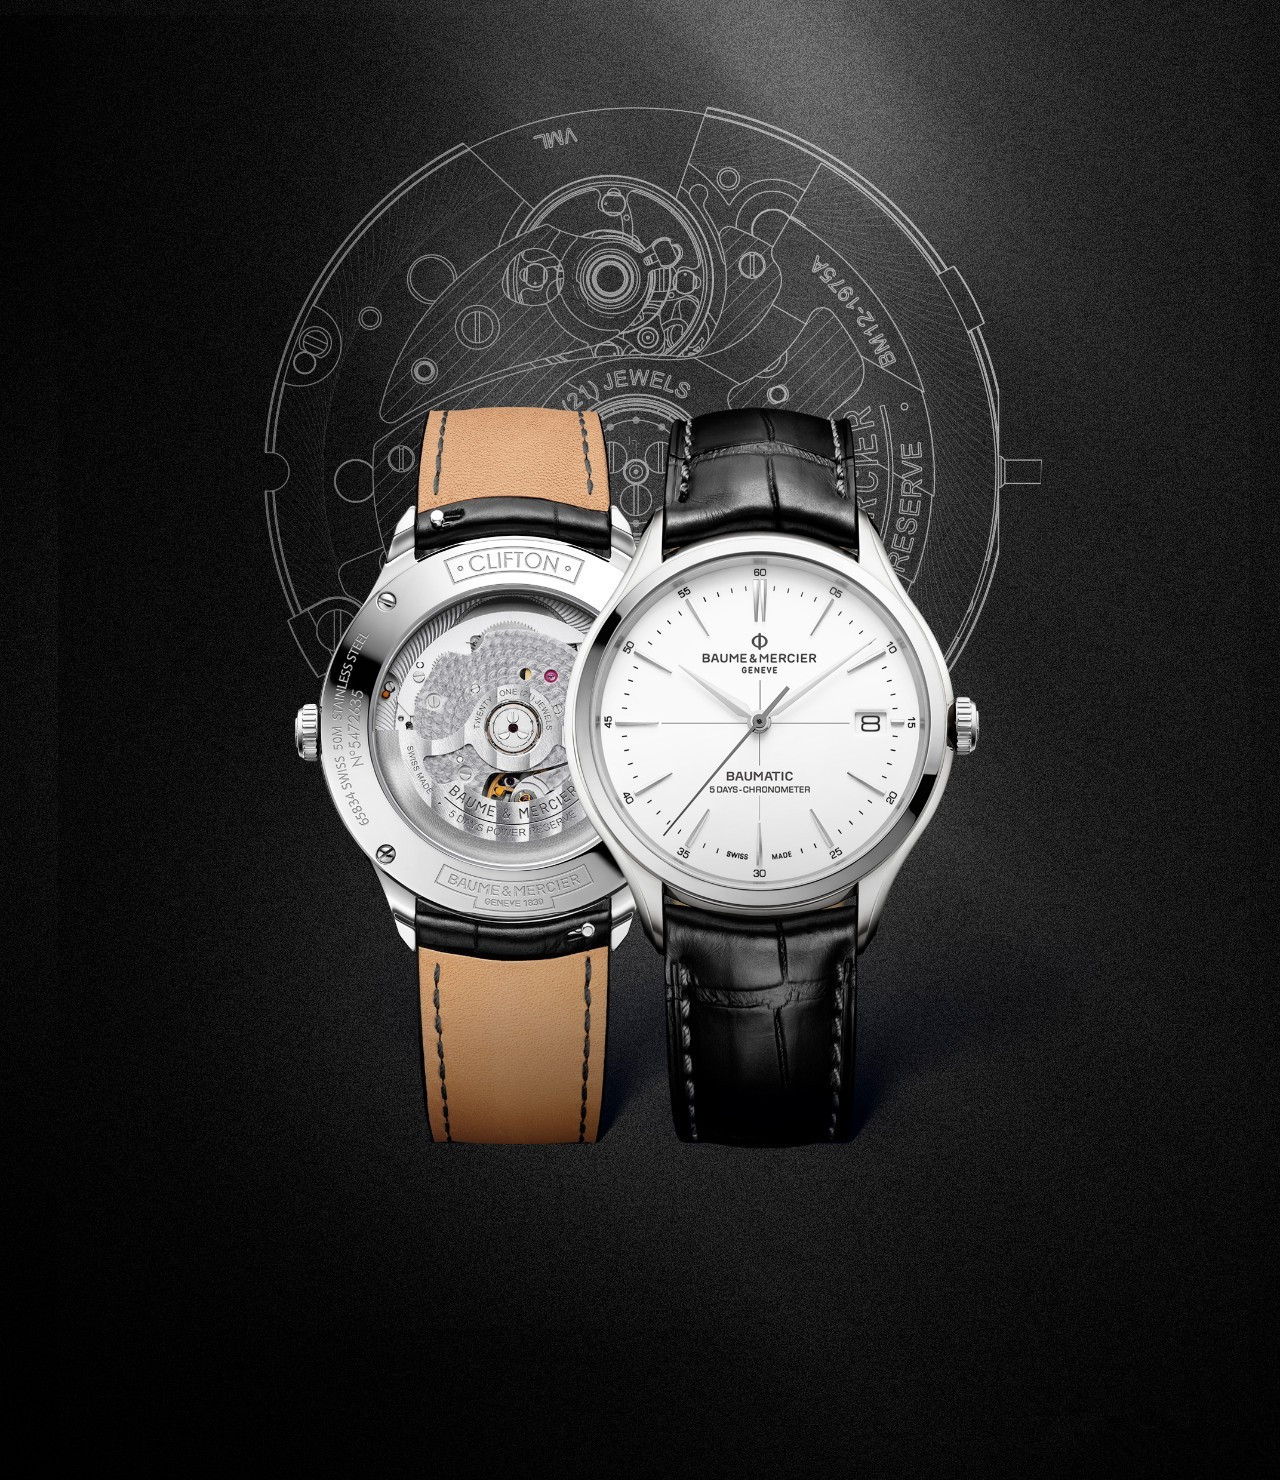 Baume & Mercier Clifton fake watches with white dials are in exquisite design.